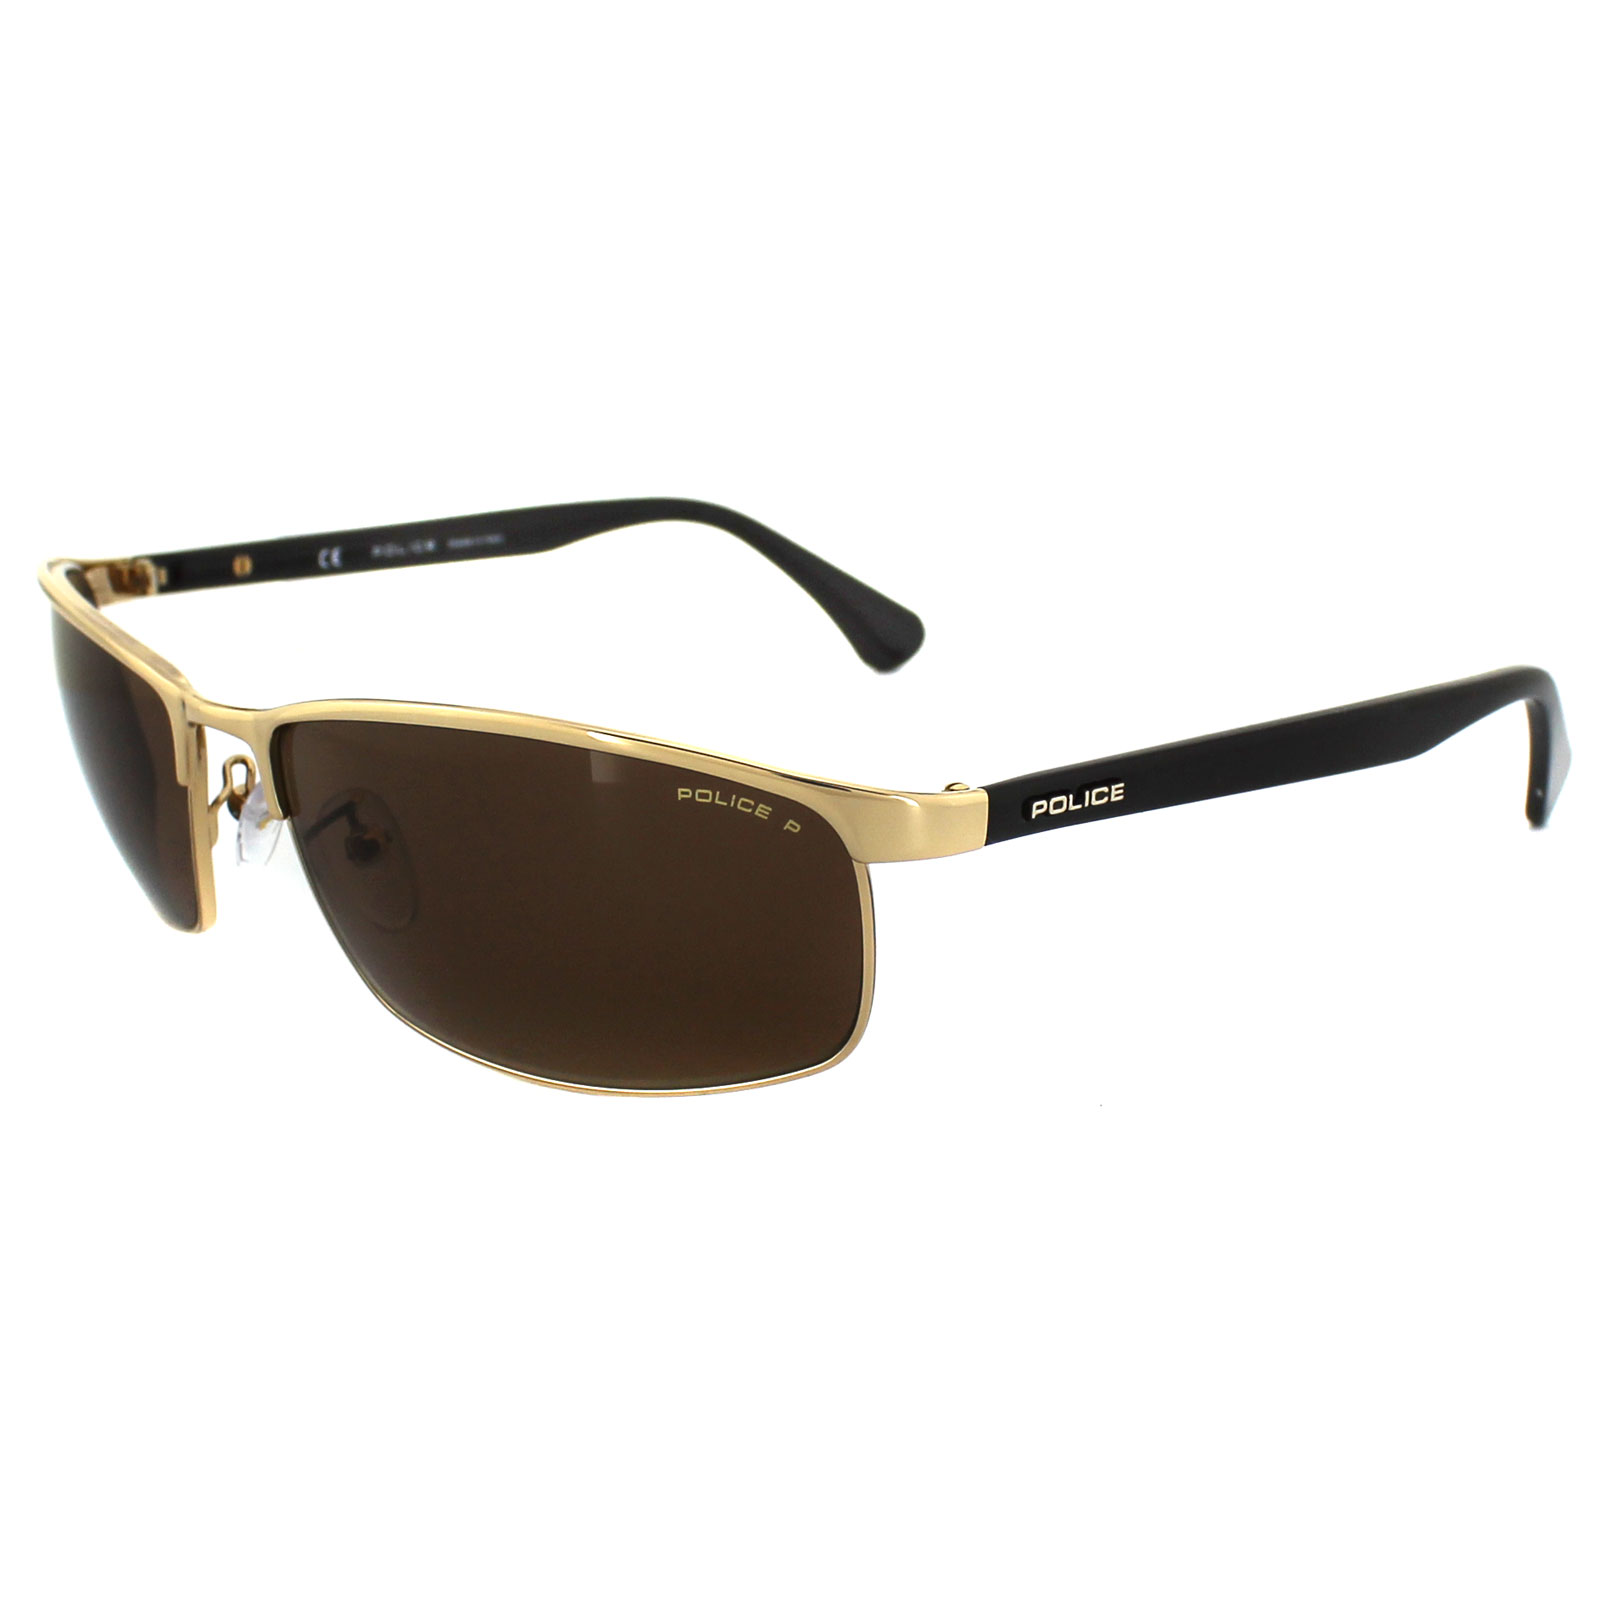 Gold Frame Police Sunglasses : Police Sunglasses 8646 300P Gold & Brown Brown Polarized ...